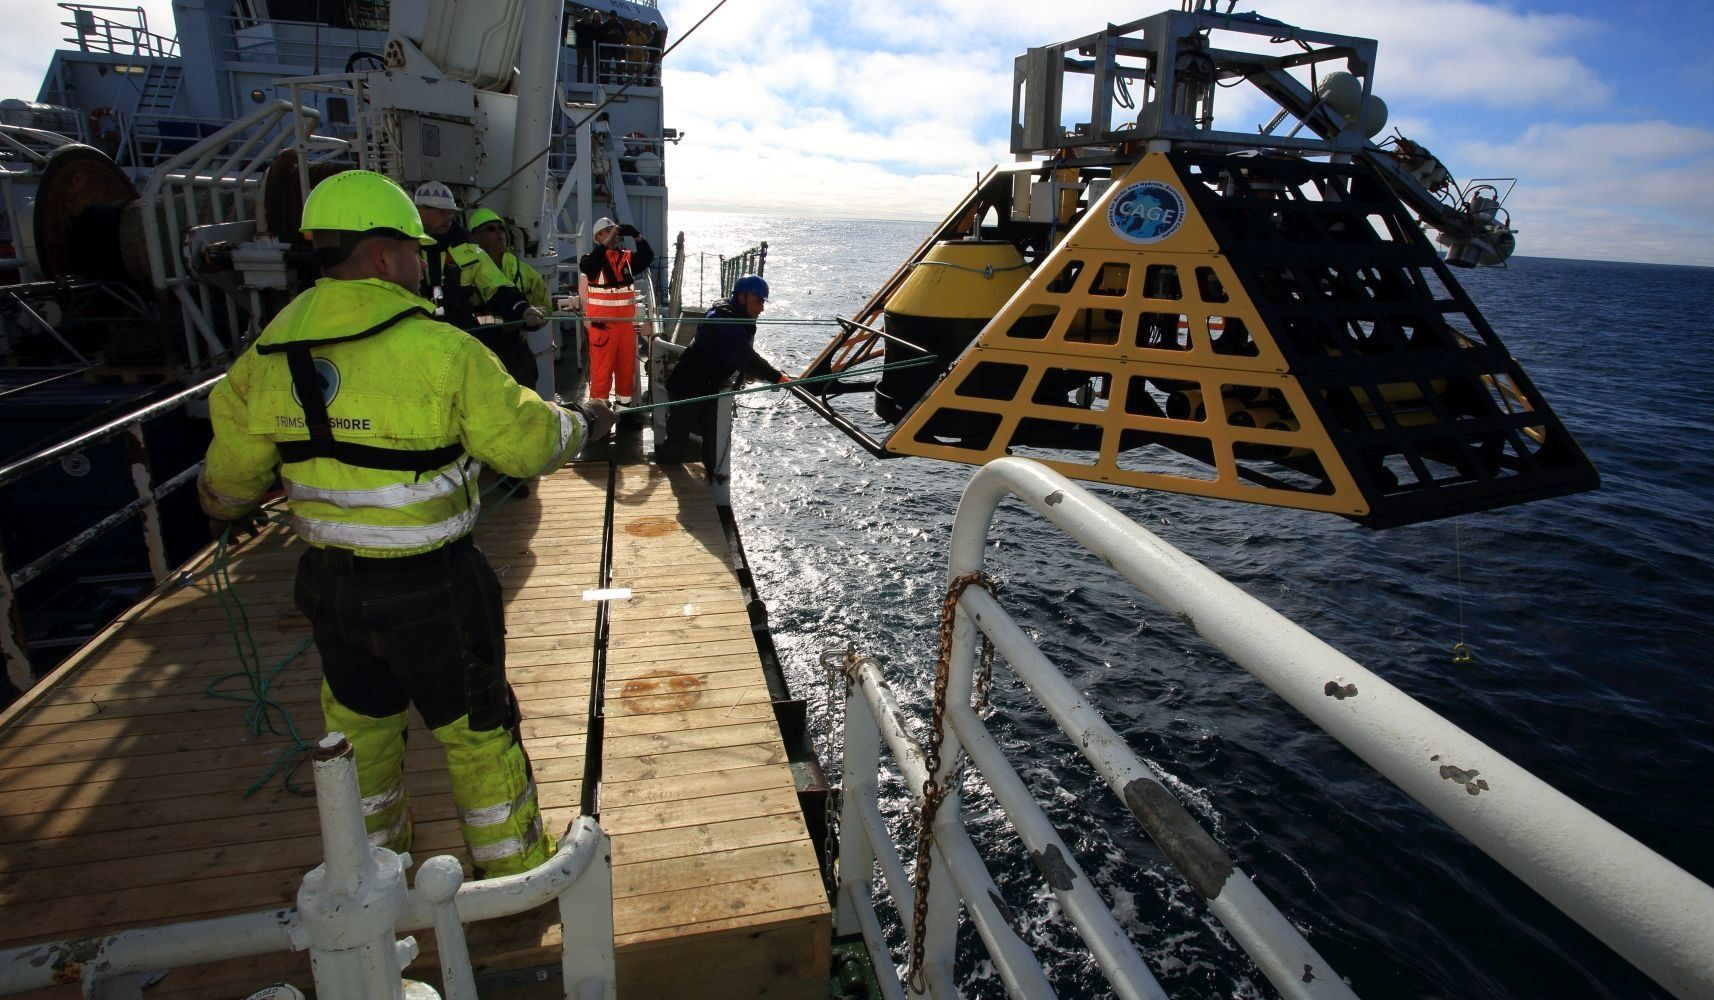 Marine biologist Peter Linke, GEOMAR engineers and deckhands guide a specially-designed lander (commissioned by Norway's Cent